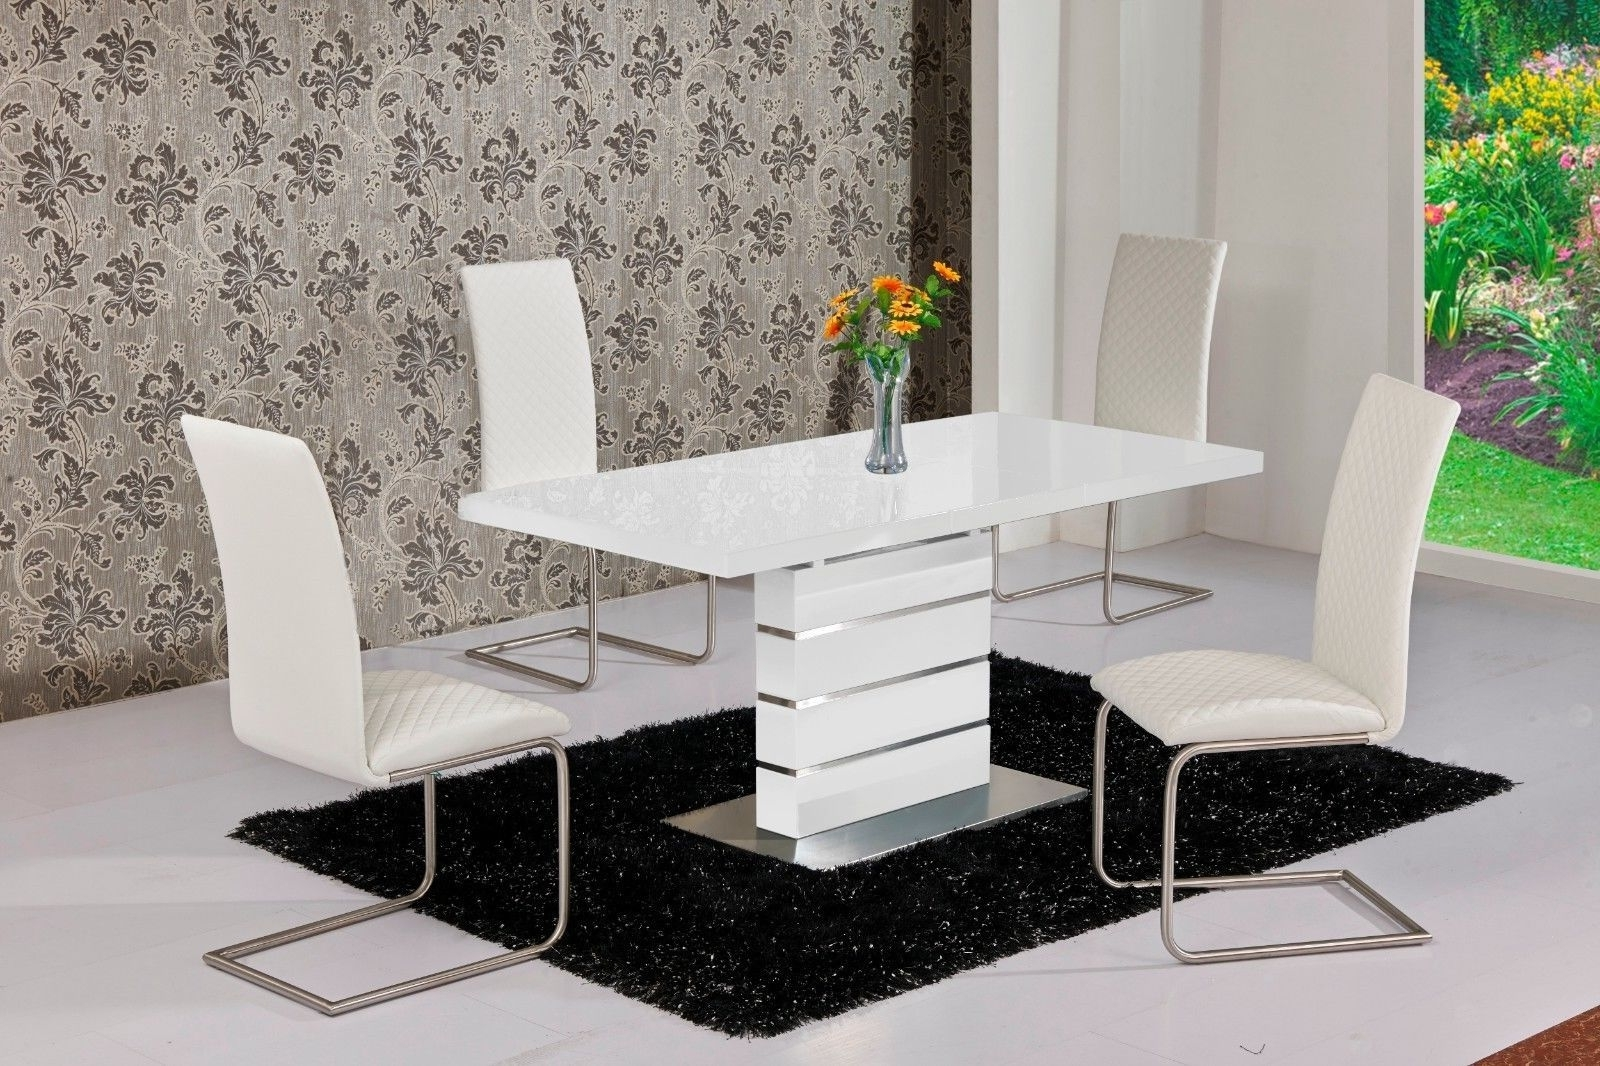 Widely Used Mace High Gloss Extending 120 160 Dining Table & Chair Set – White Inside Extendable Dining Room Tables And Chairs (View 6 of 25)